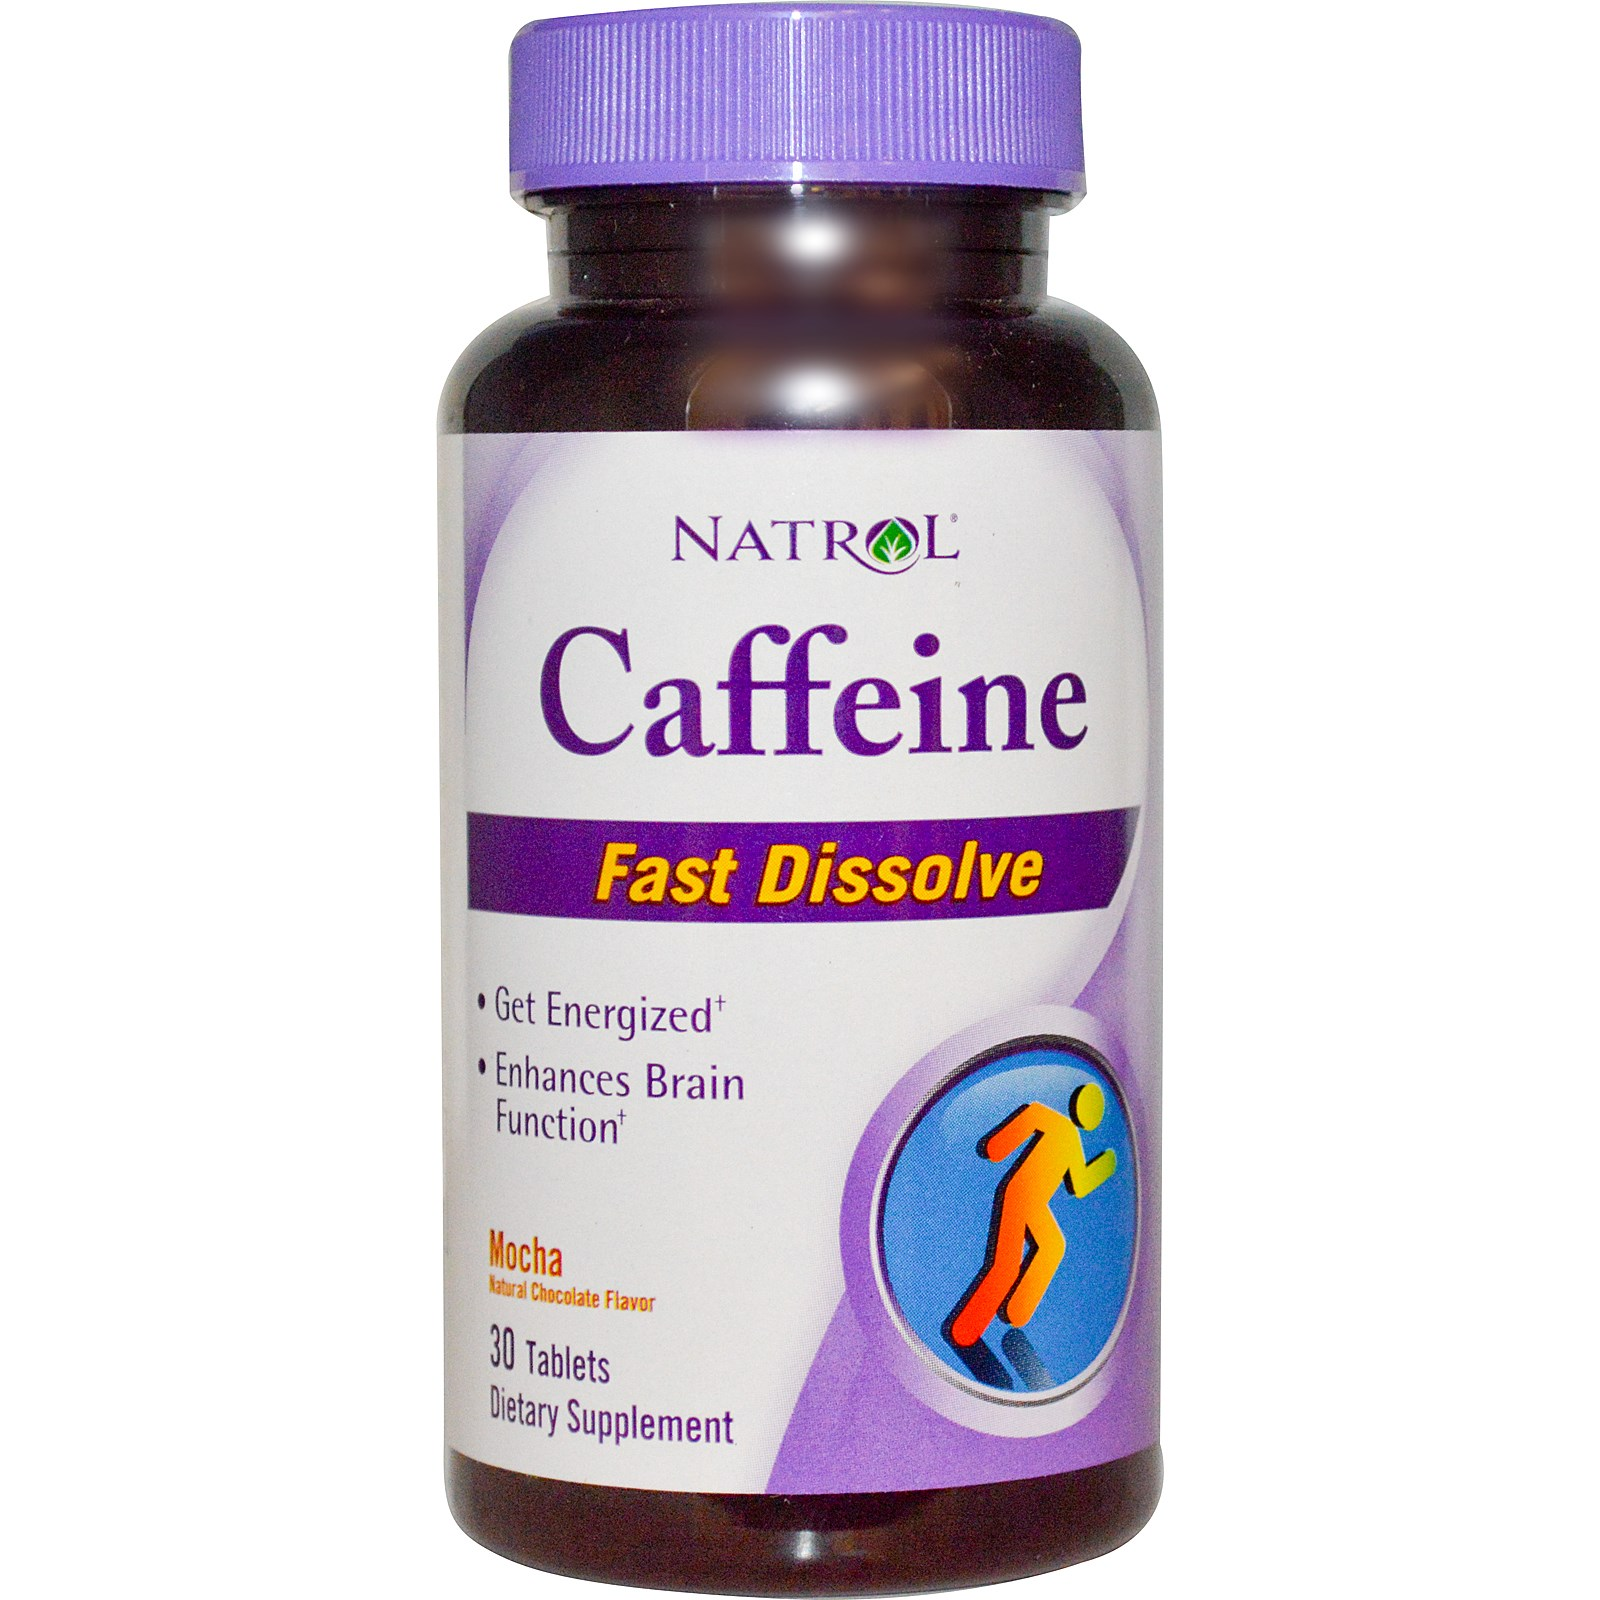 caffein Caffeine has been called the most popular drug in the world it is found naturally in over 60 plants including the coffee bean, tea leaf, kola nut and cacao pod.